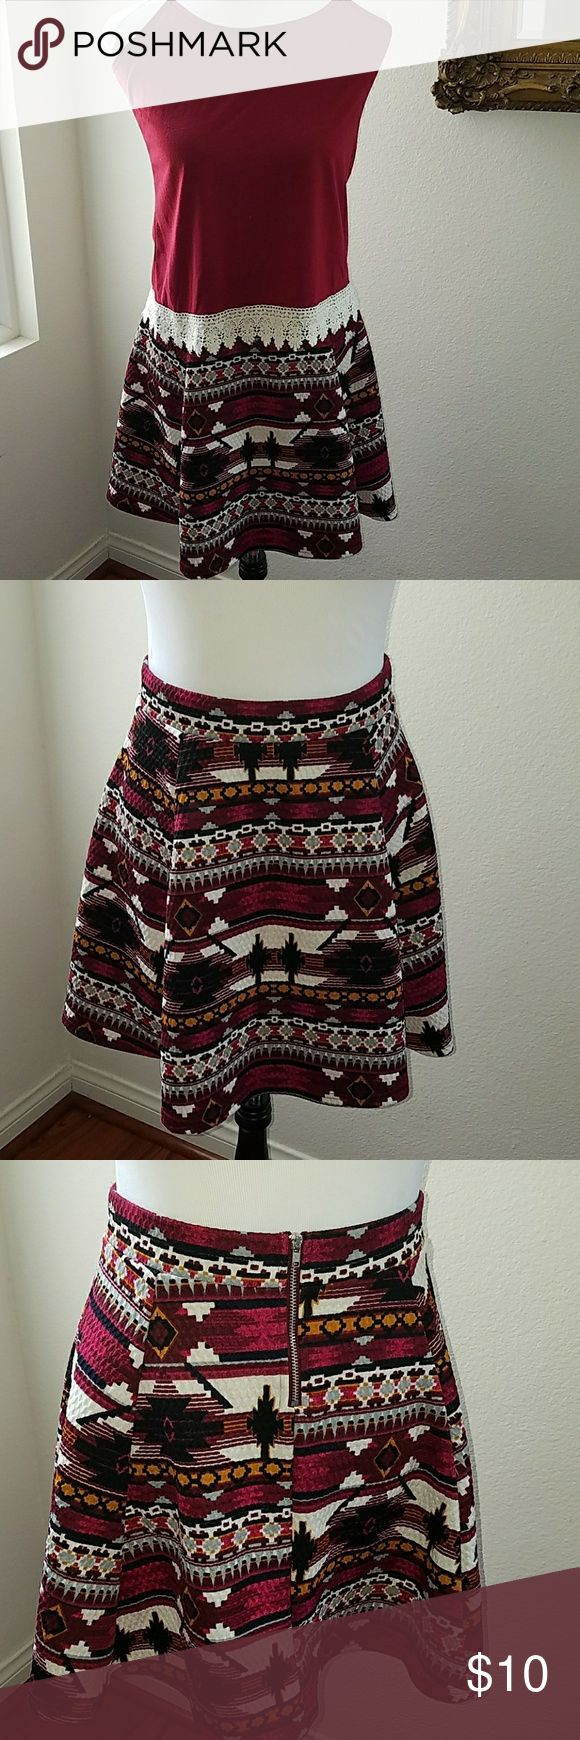 Multi Color Skirt Like new and made of soft quilt knit material. I will throw in the matching tank top for free. Skirts Mini